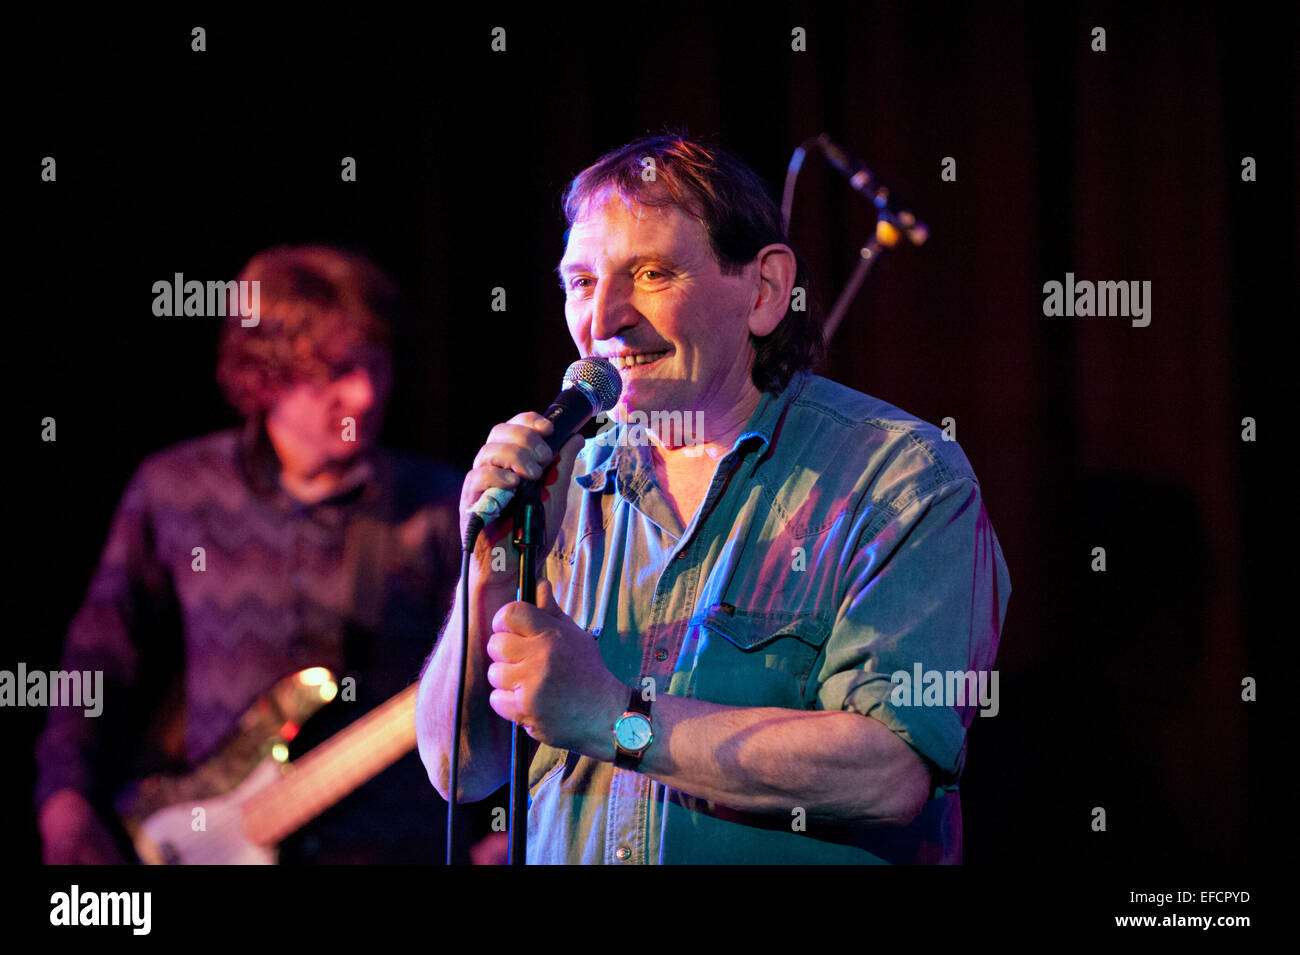 Mike Heron, former member of The Incredible String Band, in concert Trembling Bells, at The Continental, Preston, - Stock Image